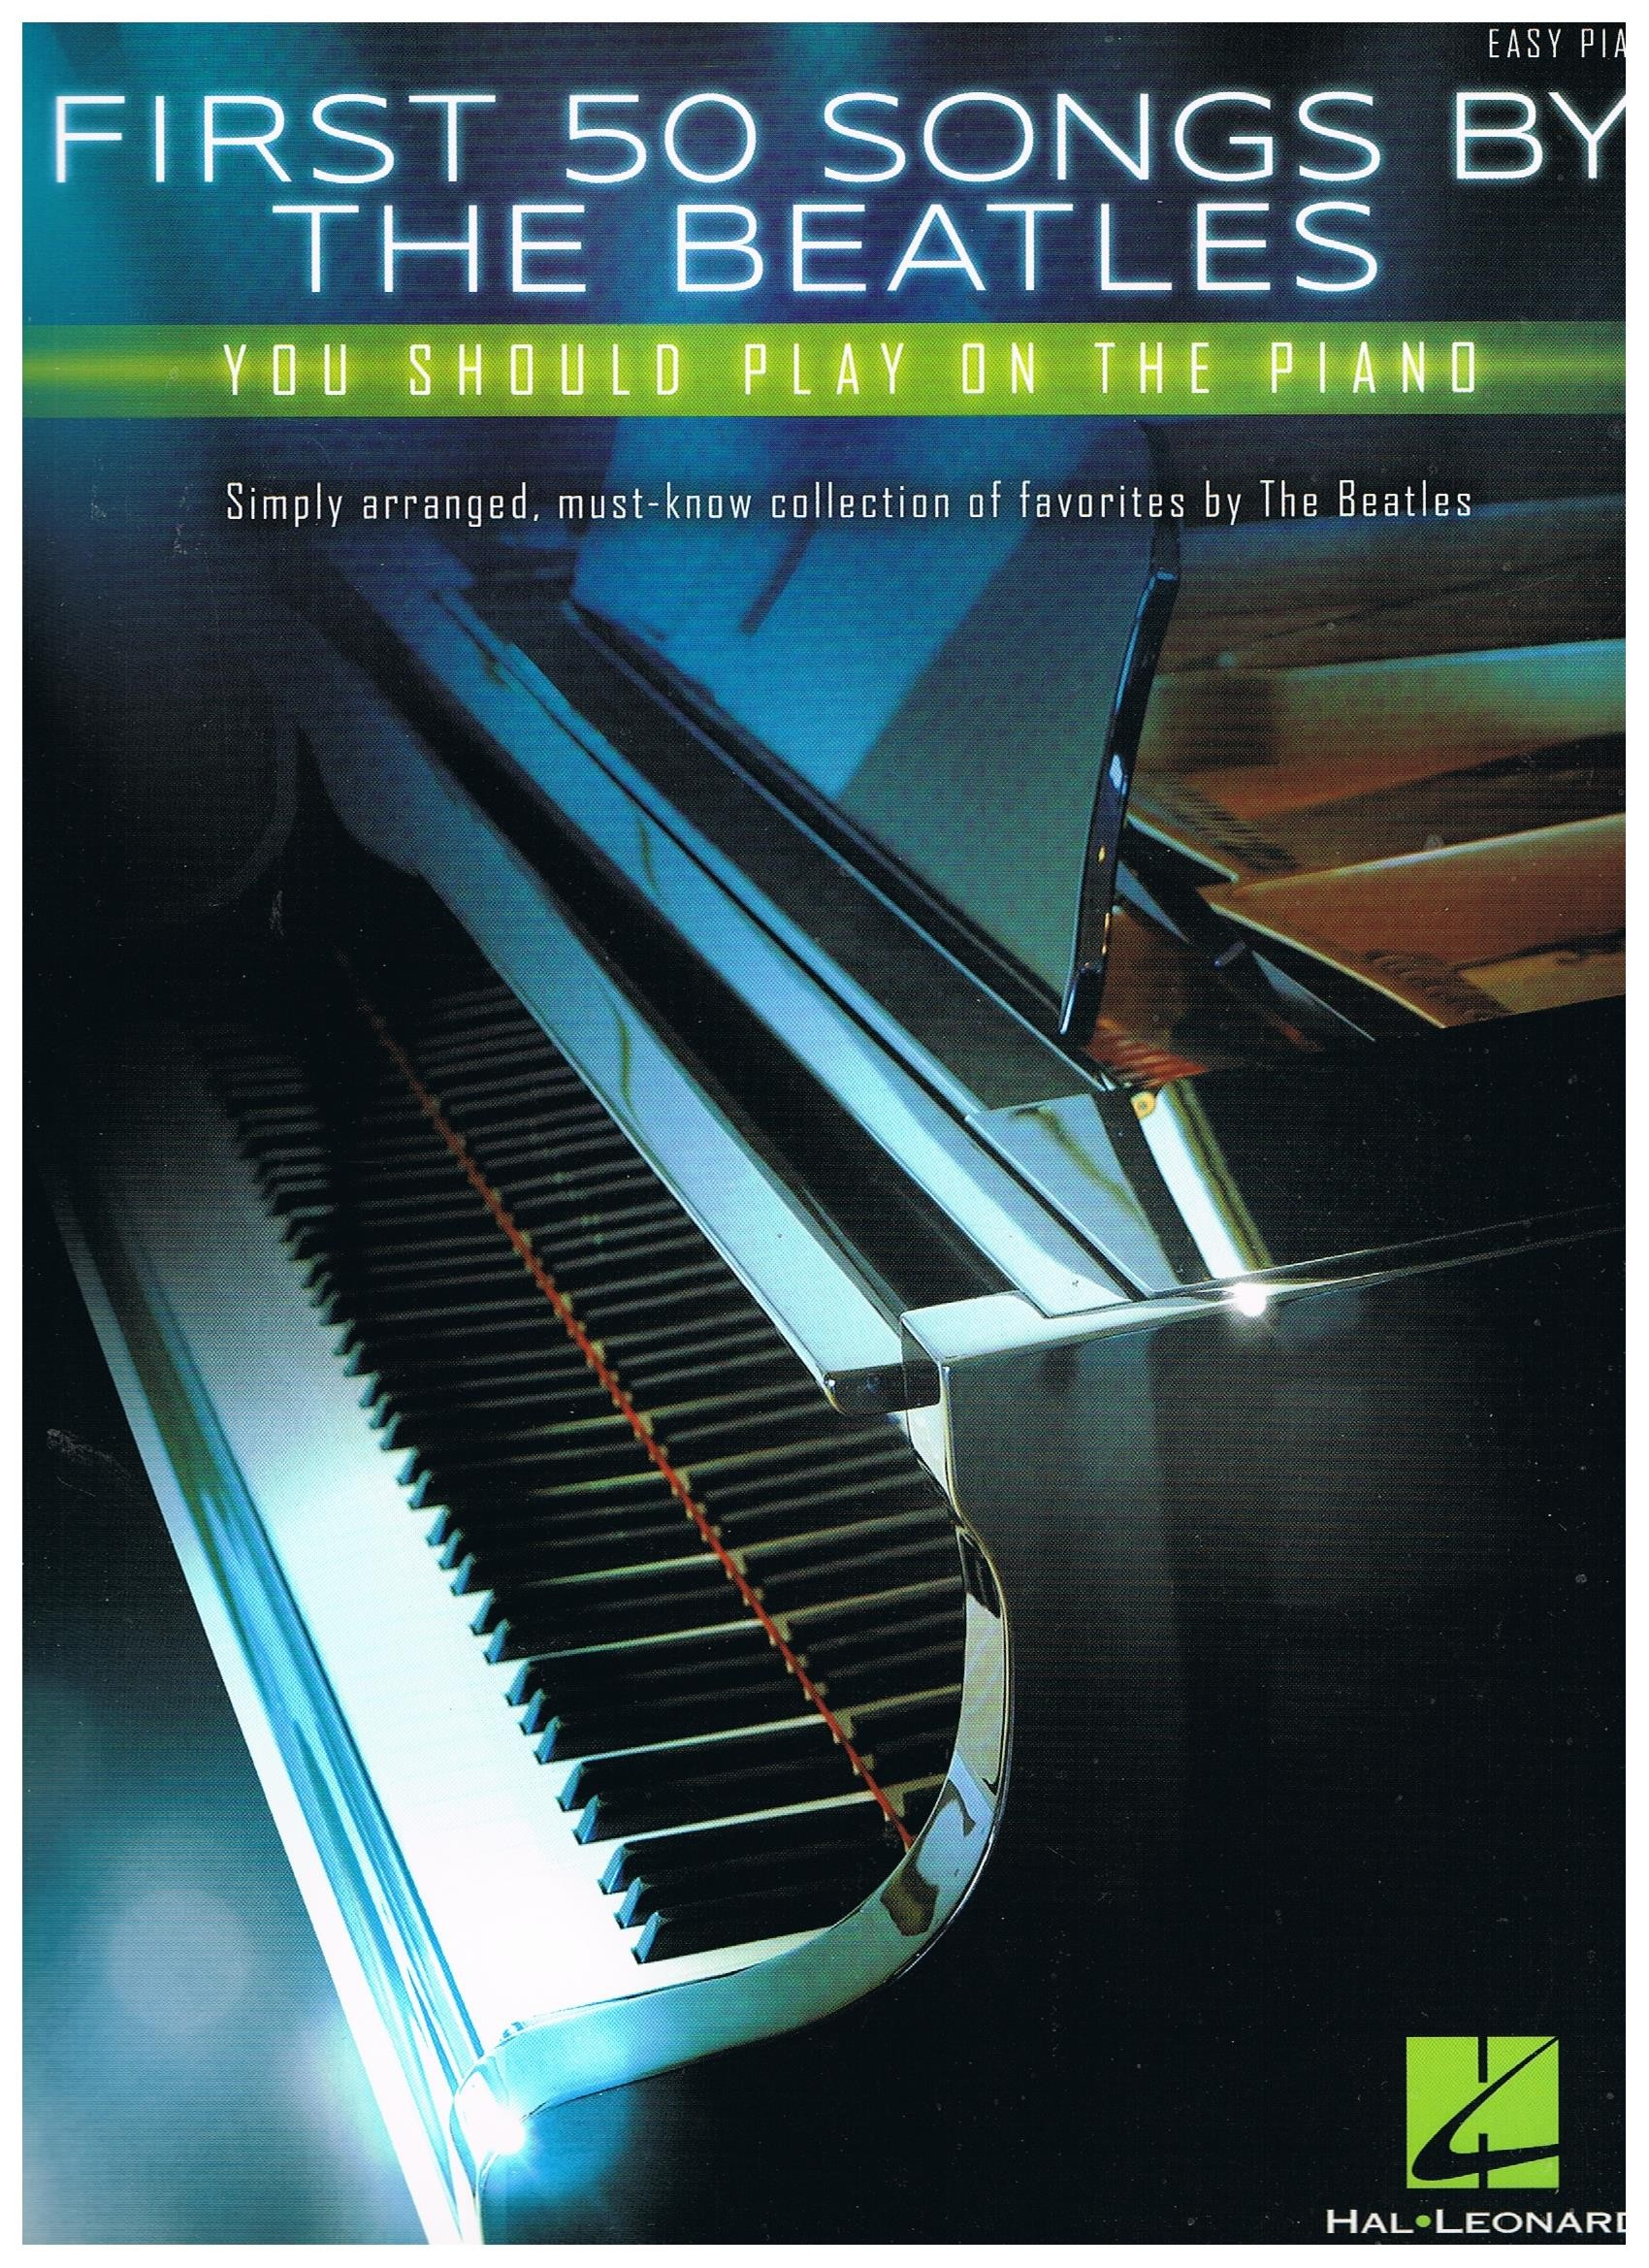 Beatles  First 50 Songs By The Beatles you should play on the piano (Easy)   Hal Leonard